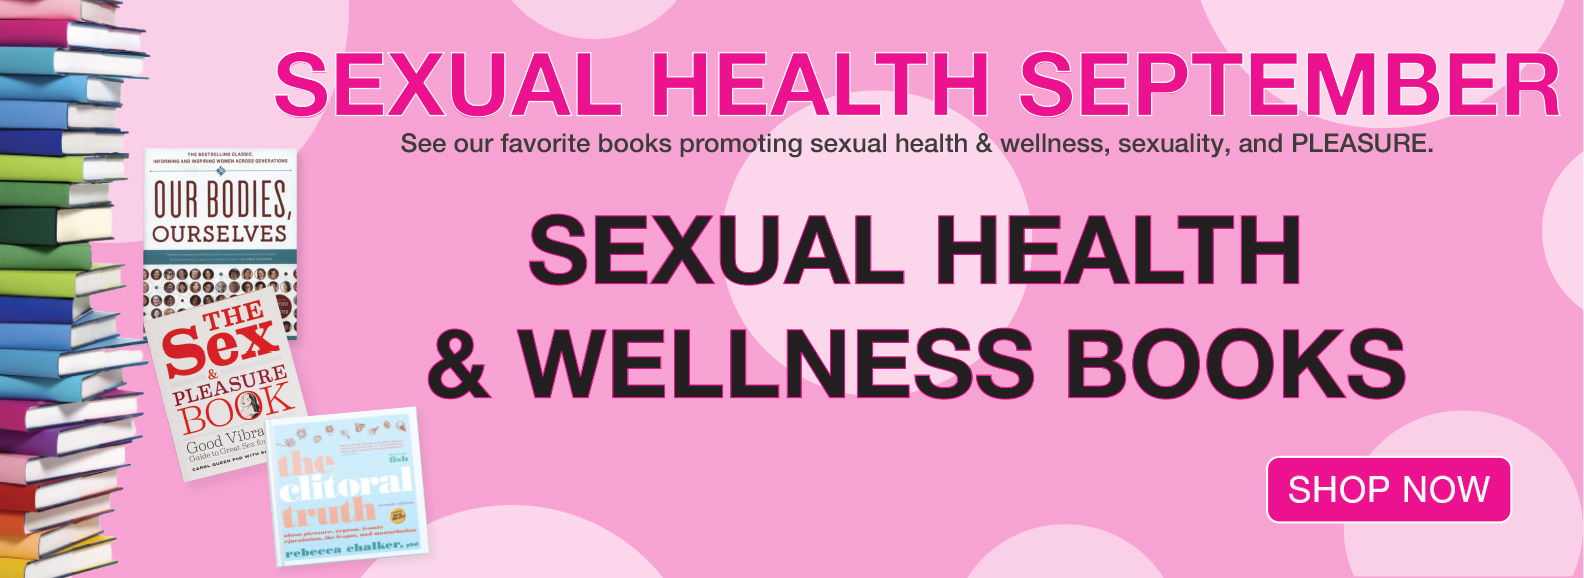 Sexual Health September